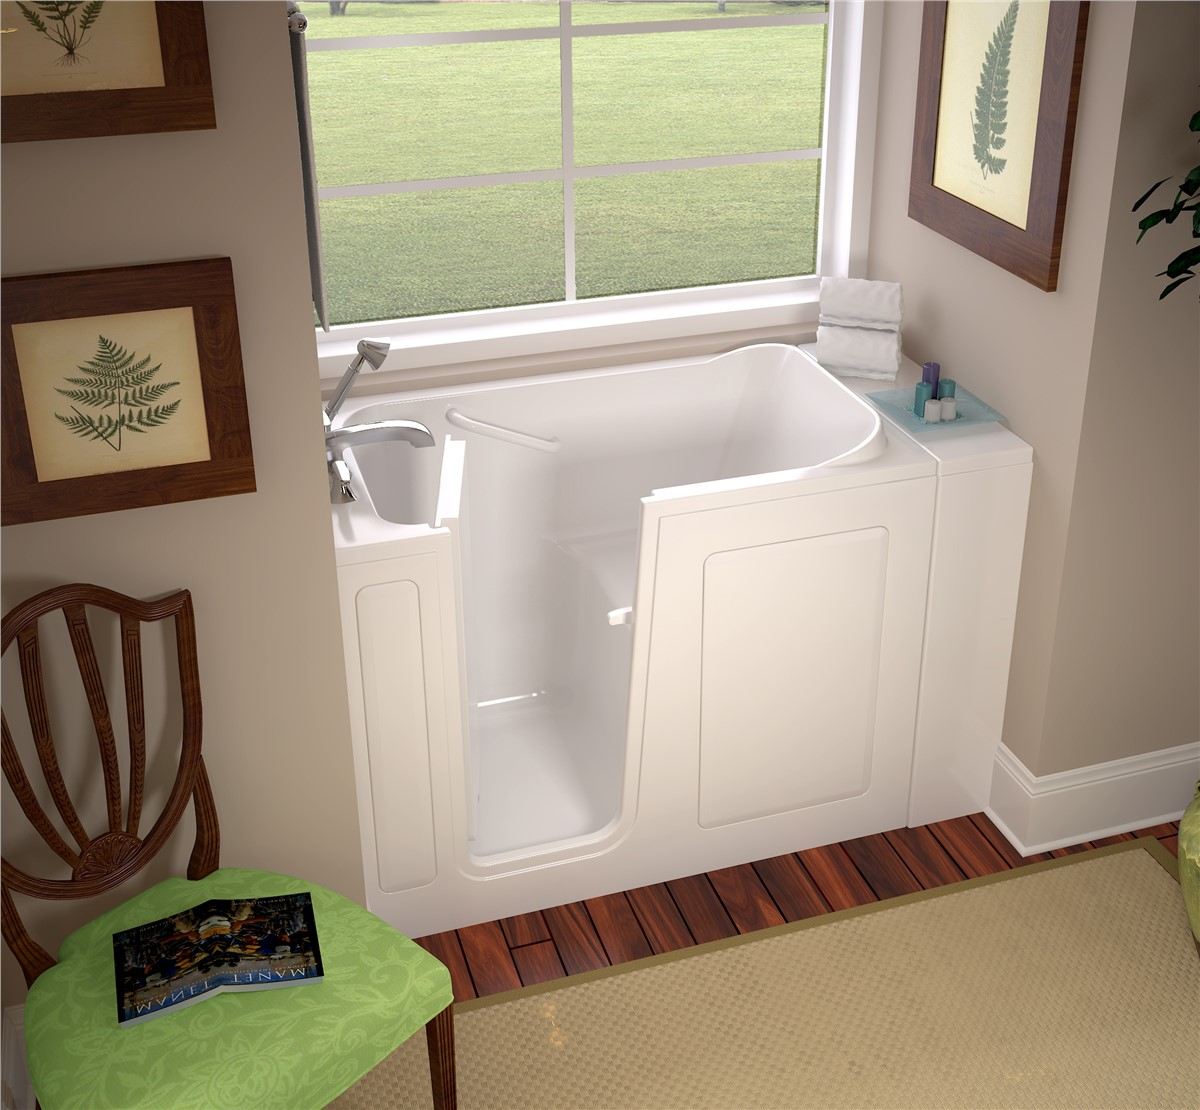 Buy a Walk-In Tub and Installation is Free! - Hometown Contractors, Inc.